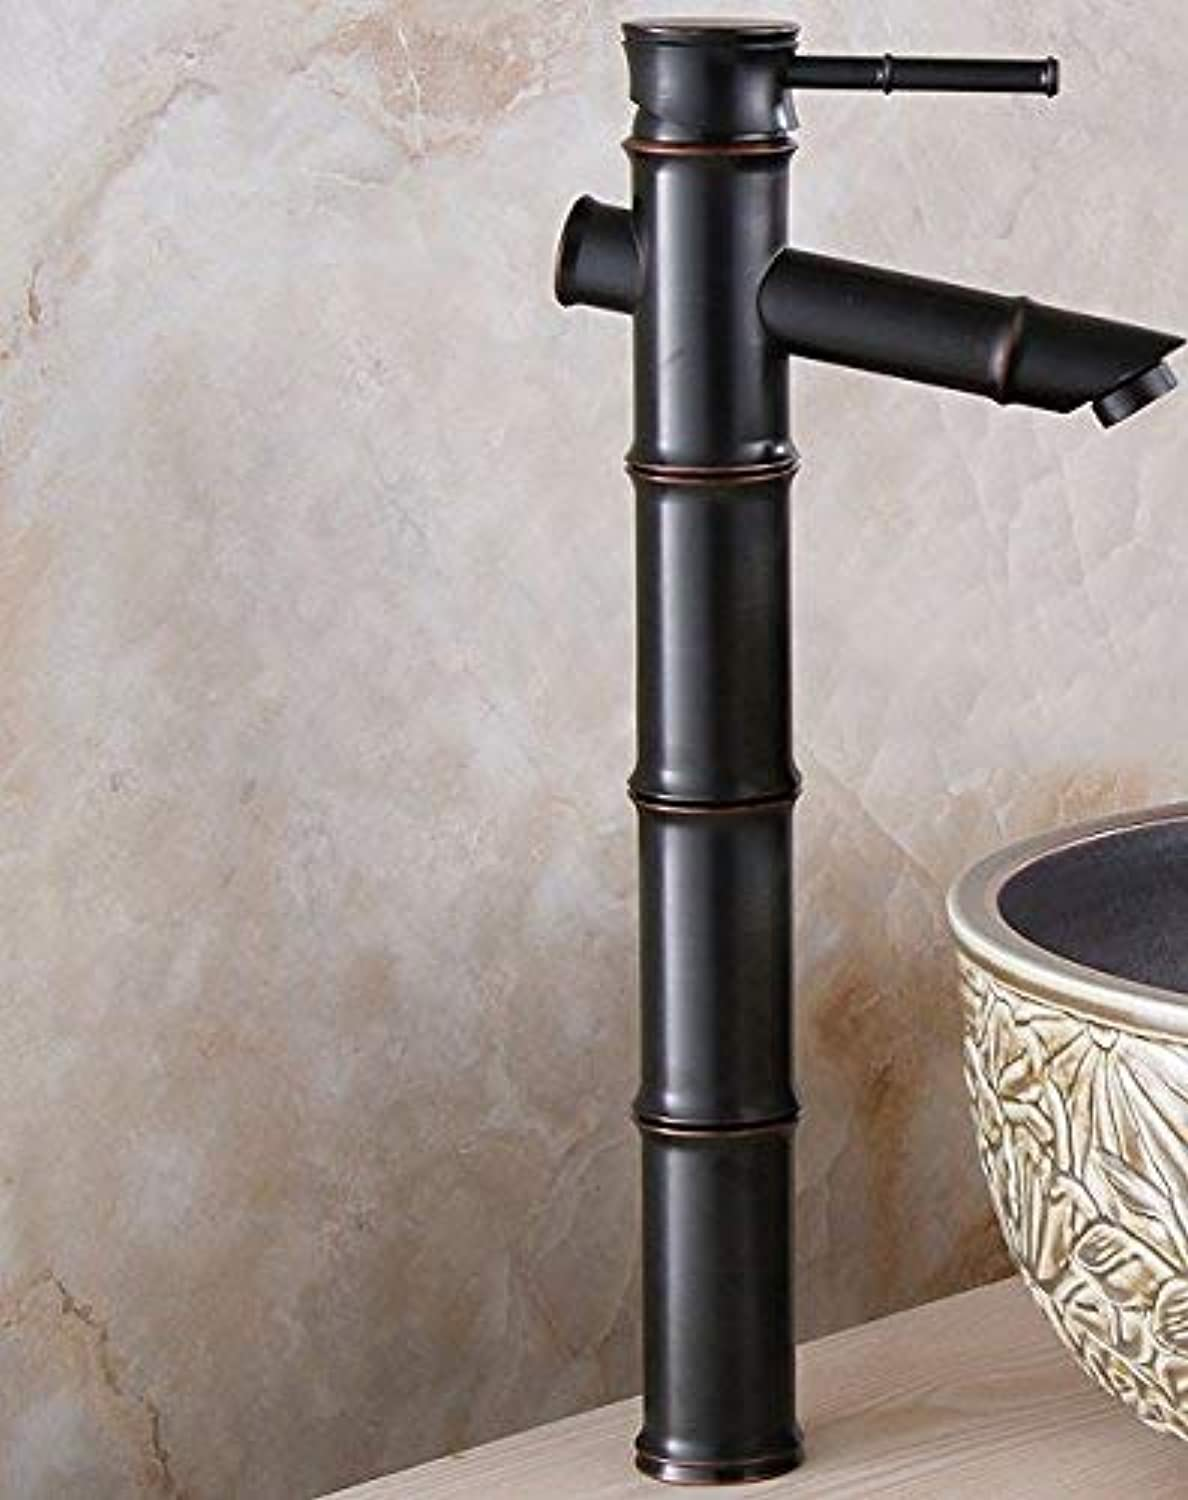 European Style Retroot And Cold Stage Basin Single Handle Single Holell Copper Sink Faucet